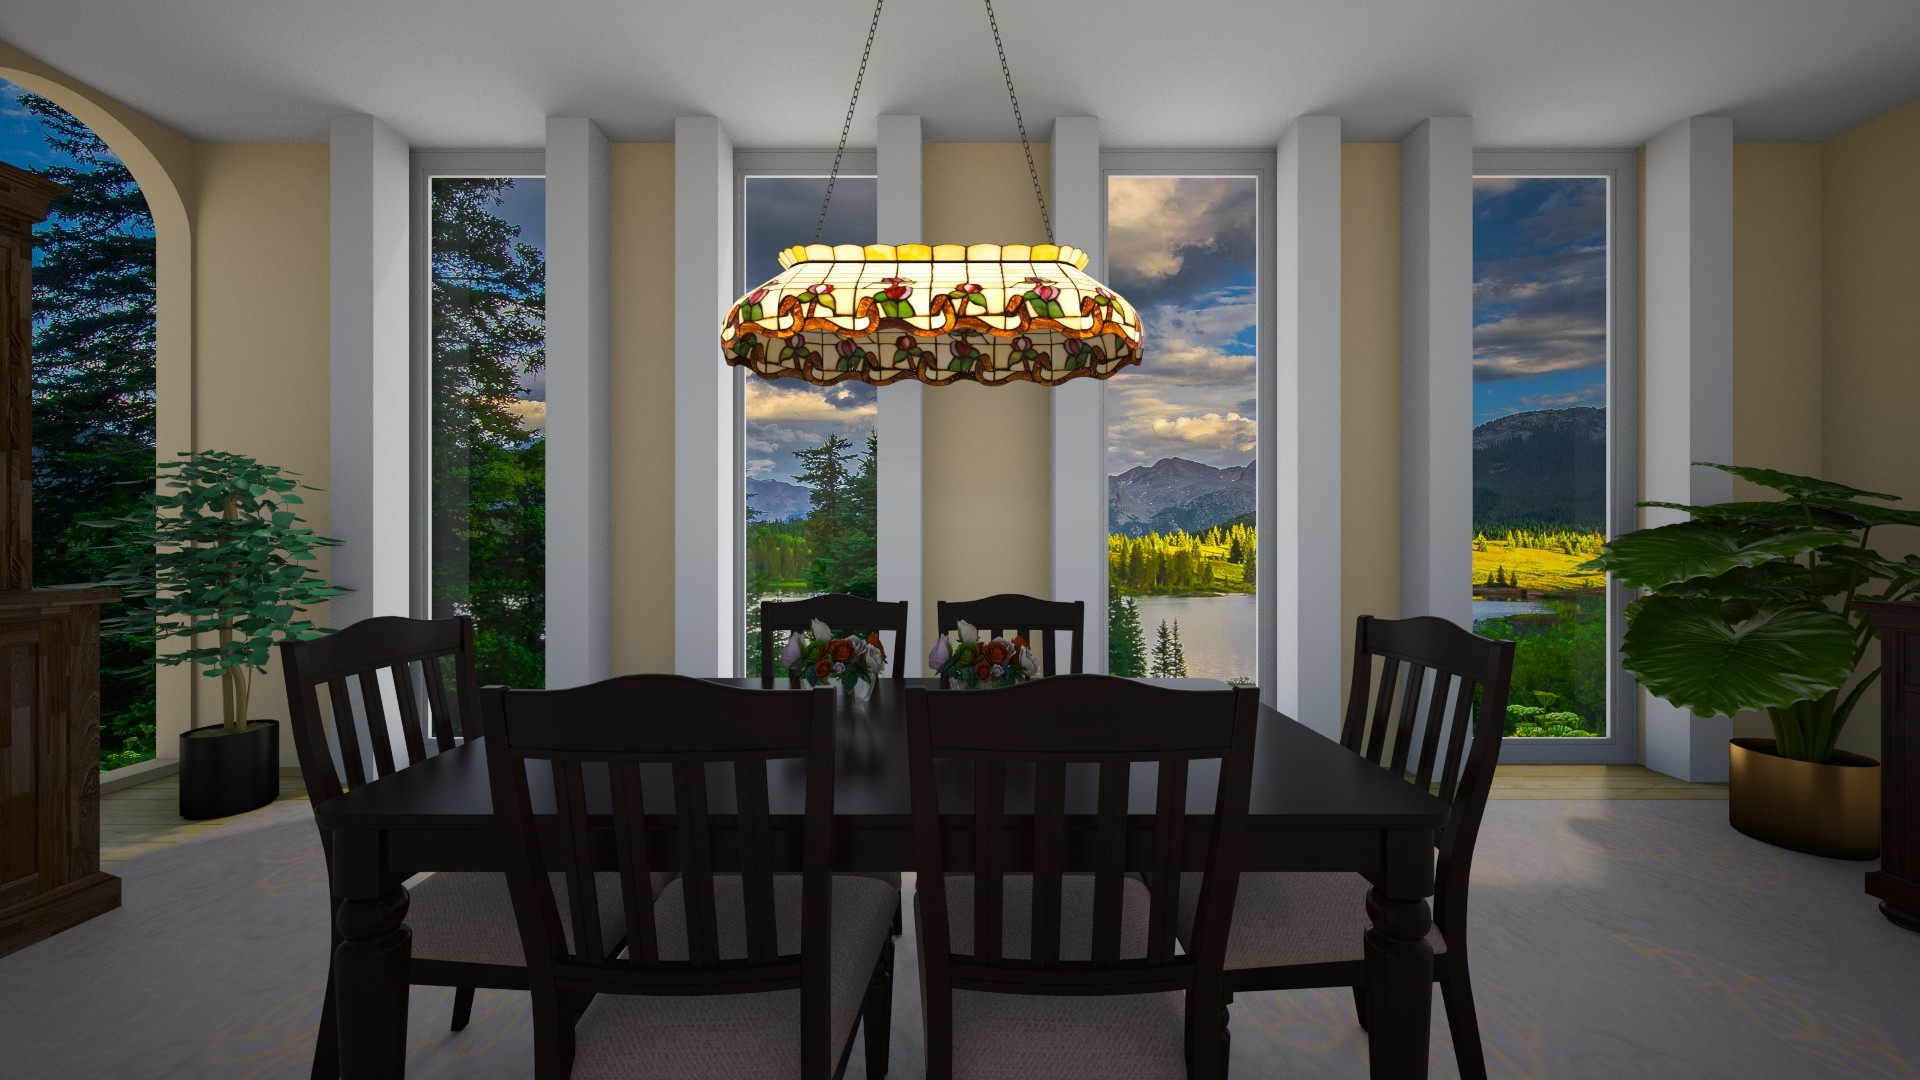 Dining room - Modern - Dining room - by Sue Bonstra